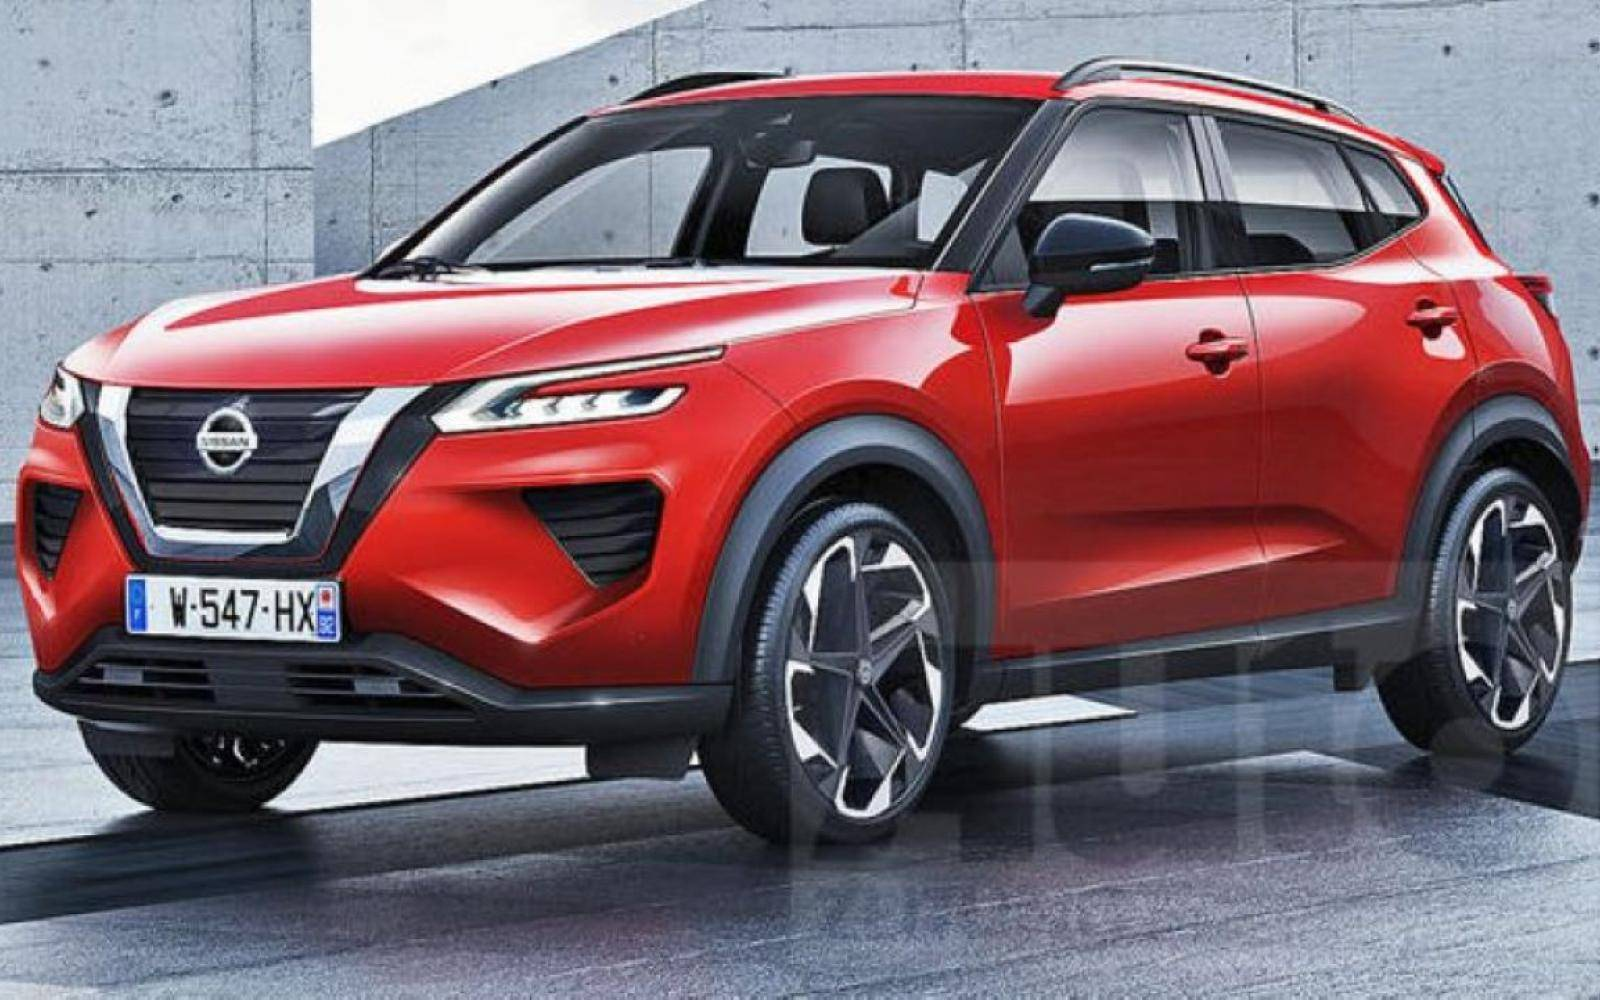 This Is What The New Nissan Qashqai 2021 Will Look Like